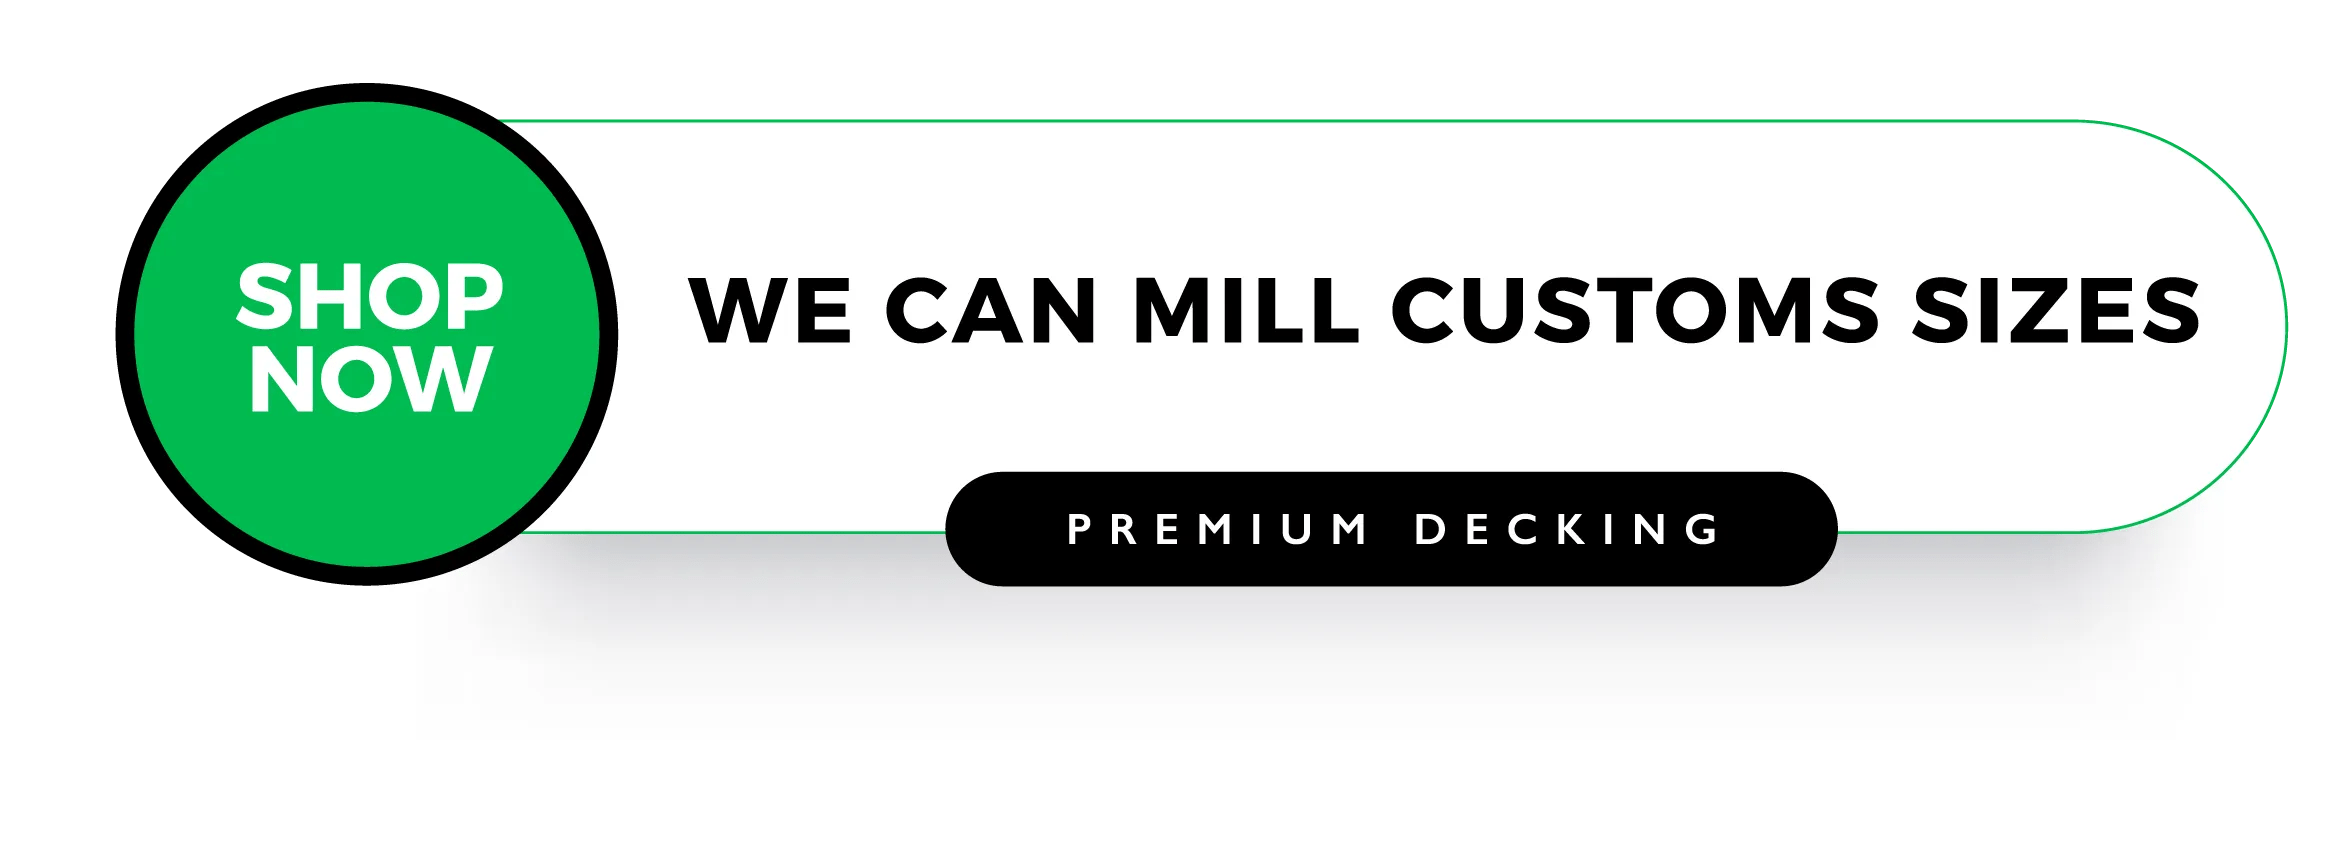 SHOP NOW - WE CAN MILL CUSTOMS SIZES